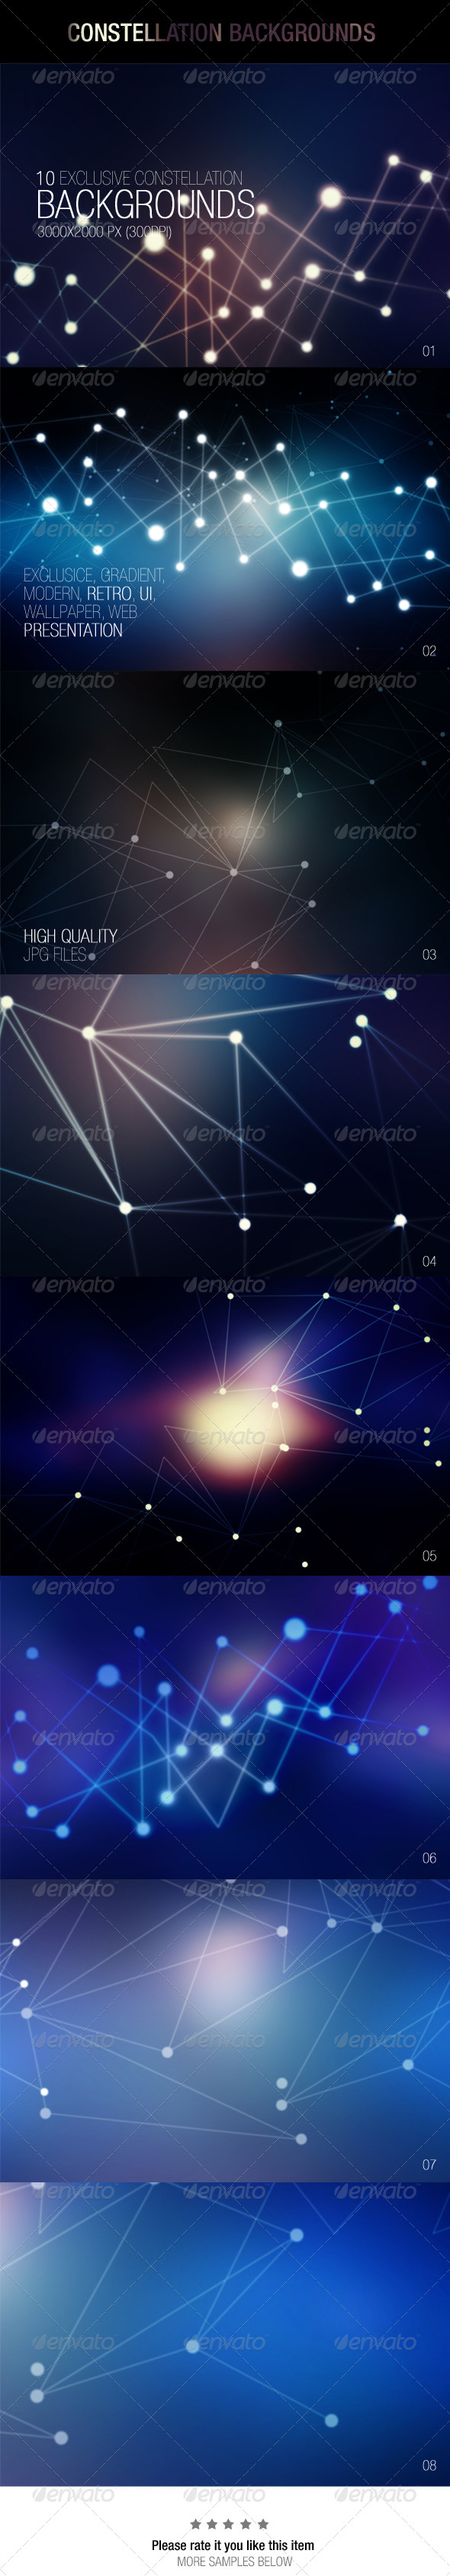 GraphicRiver Constellation Backgrounds 6978127